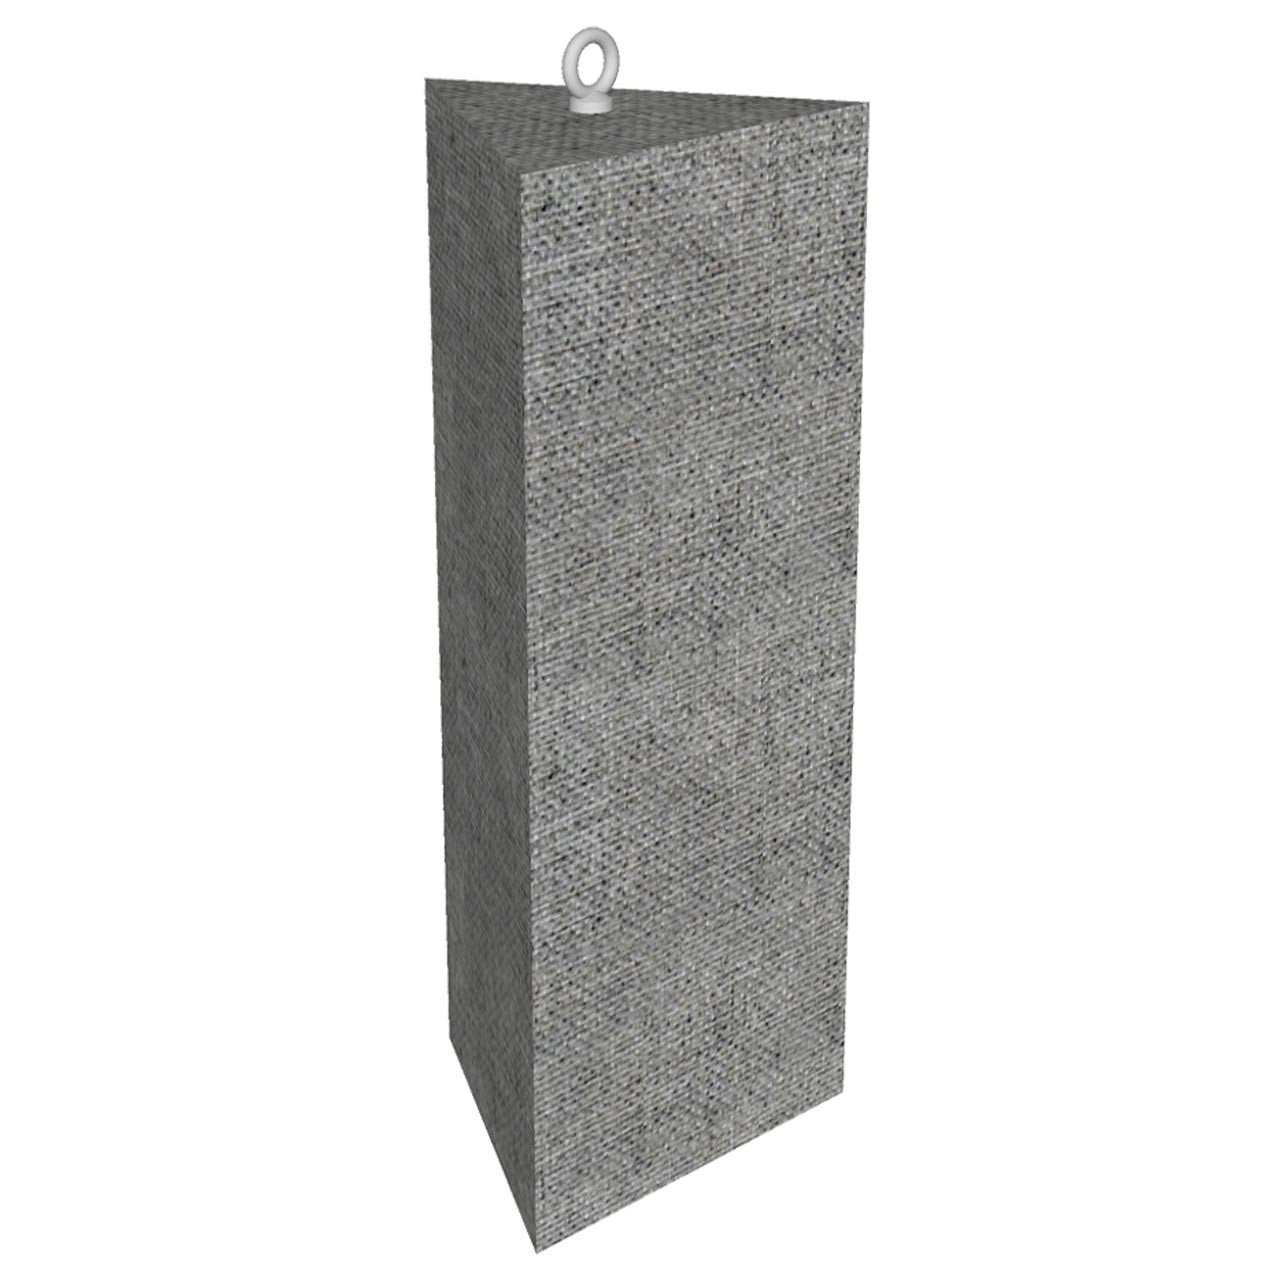 Ceiling Treatments - Primacoustic Tiki Triangular Acoustic Lantern Baffle